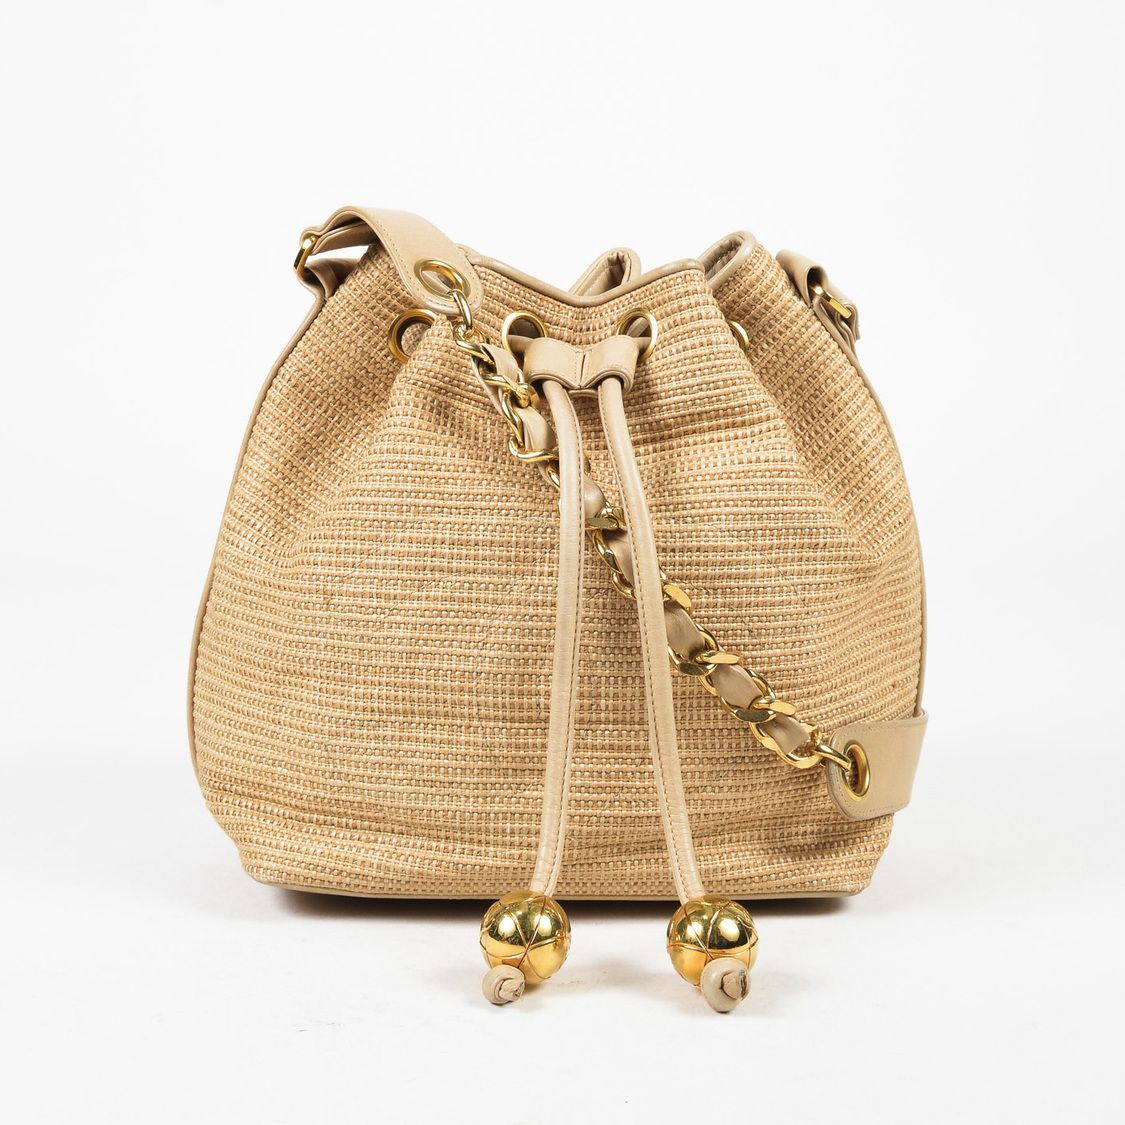 VINTAGE Chanel Brown Raffia Straw Leather Drawstring Bucket Bag EBay - What is an invoice paypal chanel online store